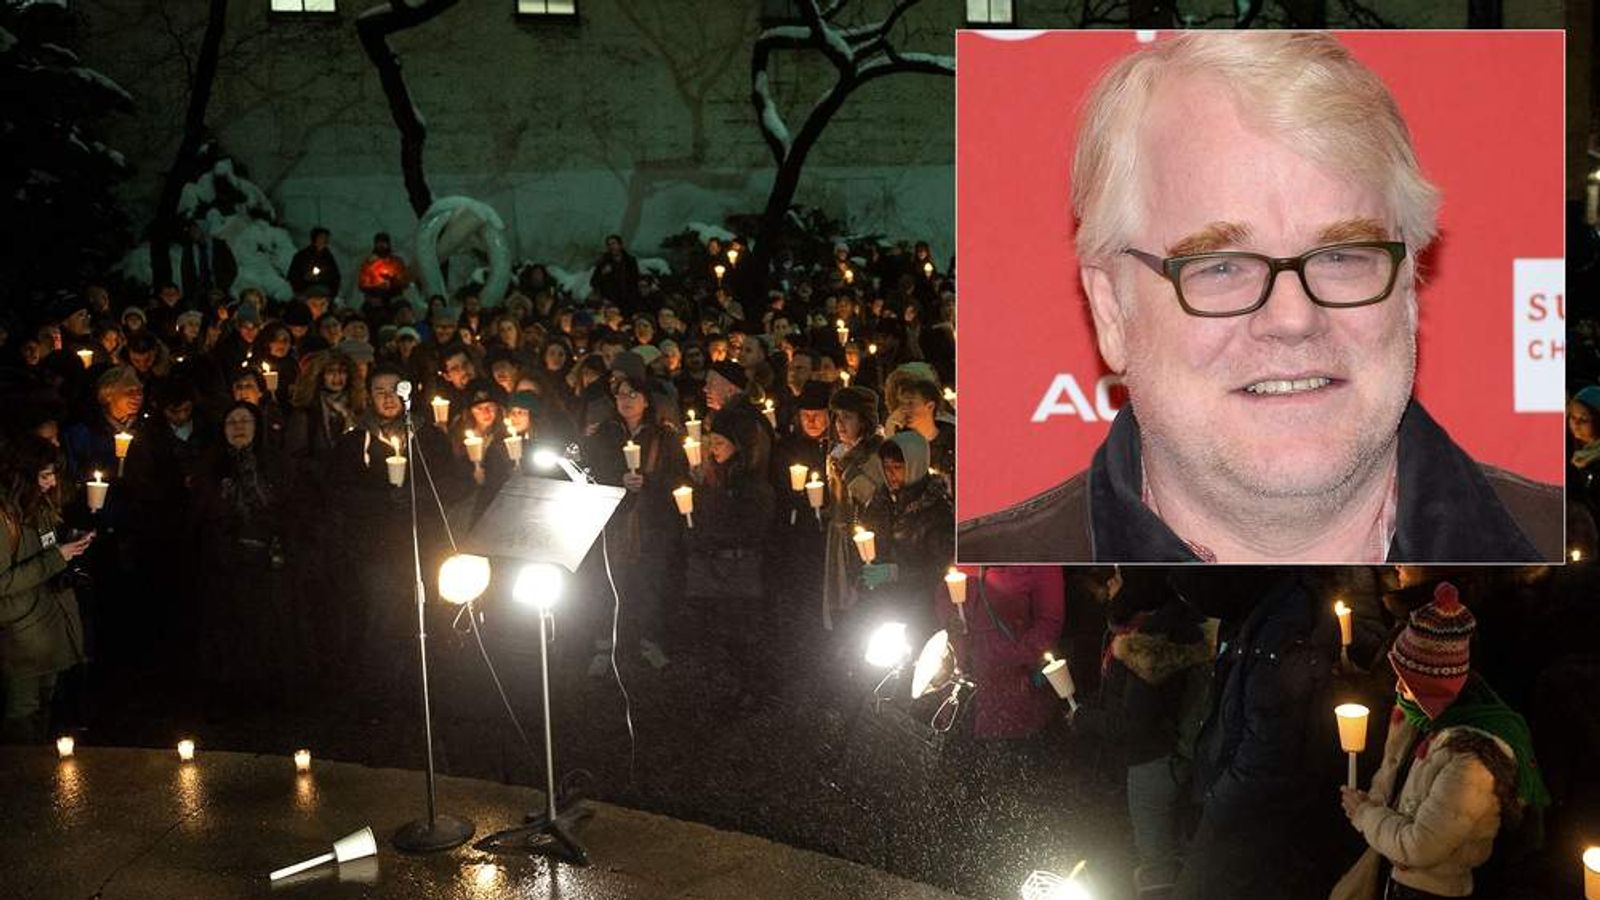 Candlelight Vigil For Philip Seymour Hoffman